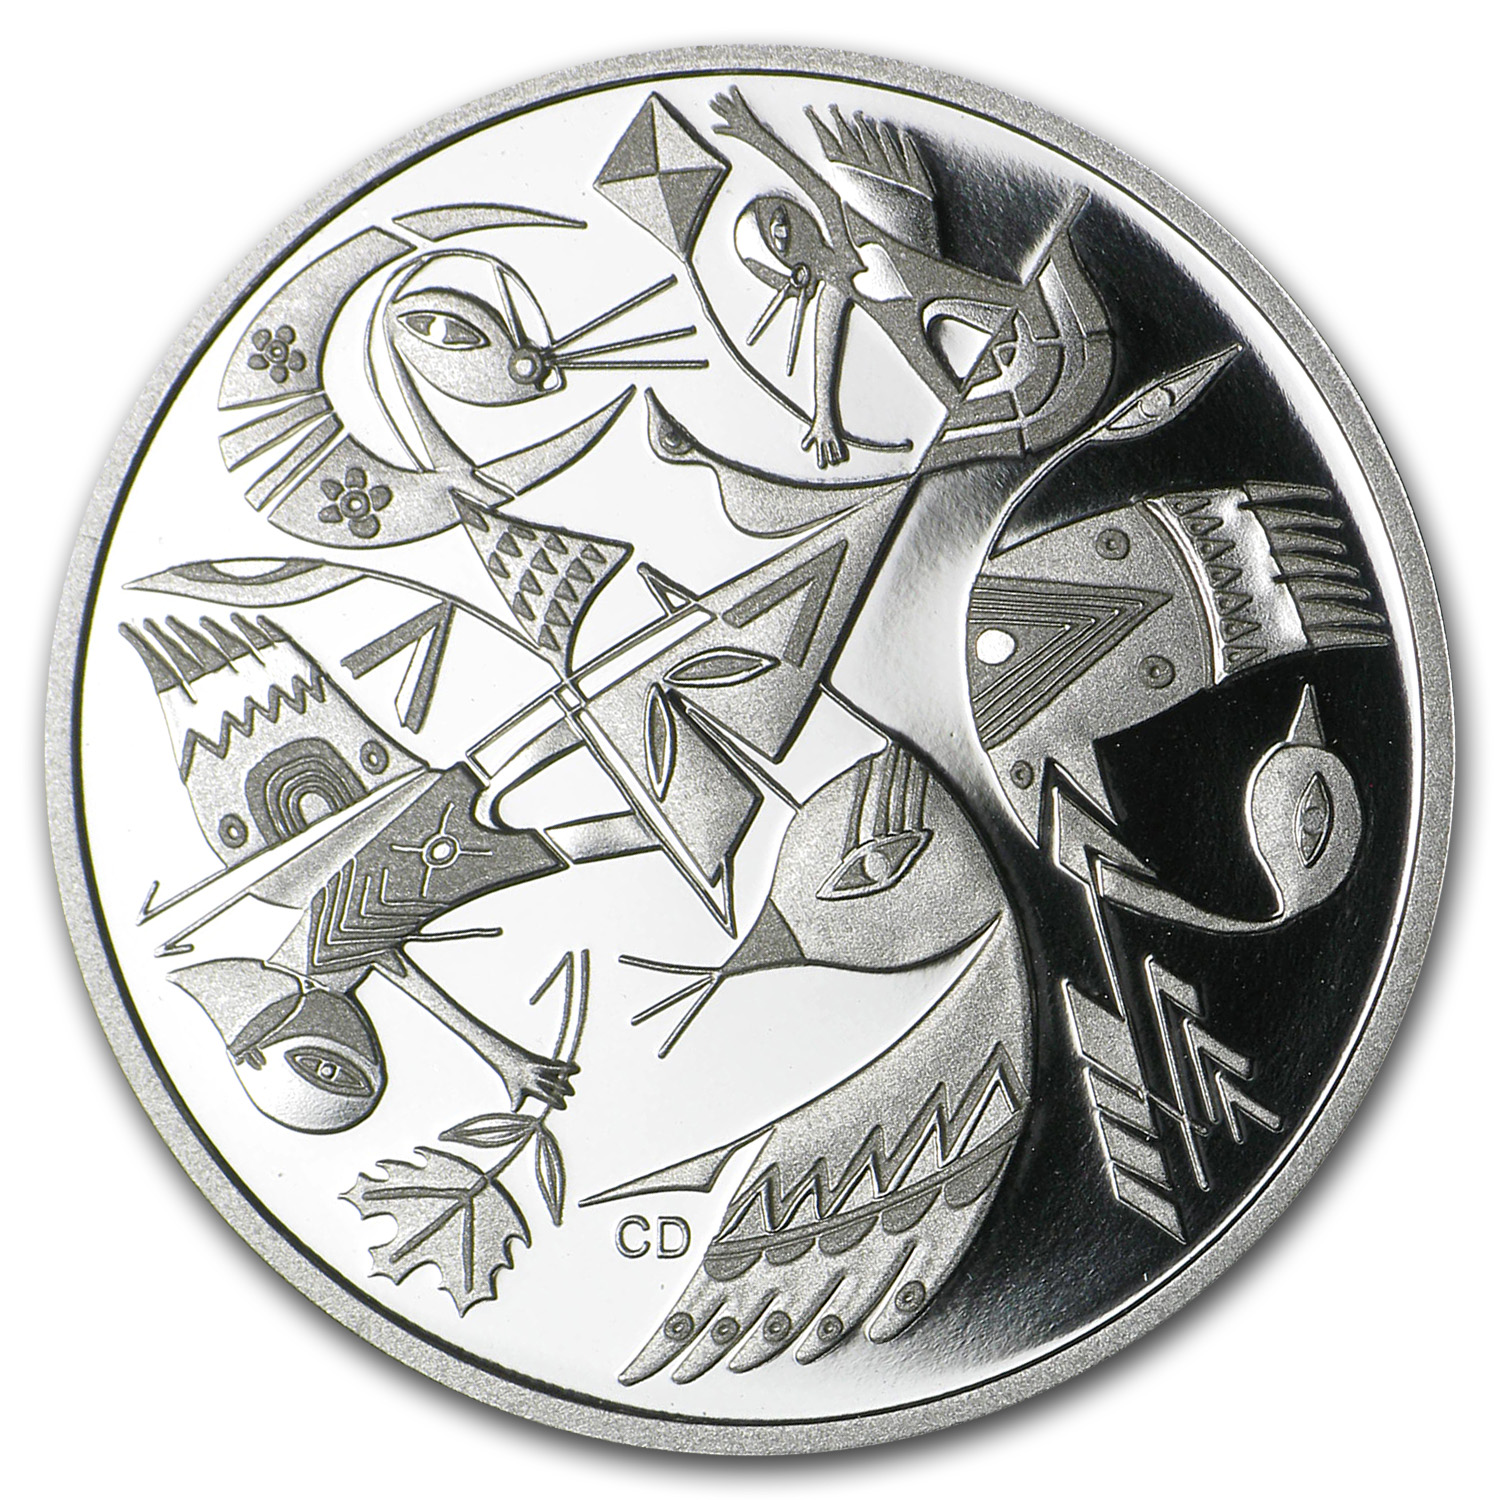 2013 1 oz Silver Canadian $20 Canadian Contemporary Art